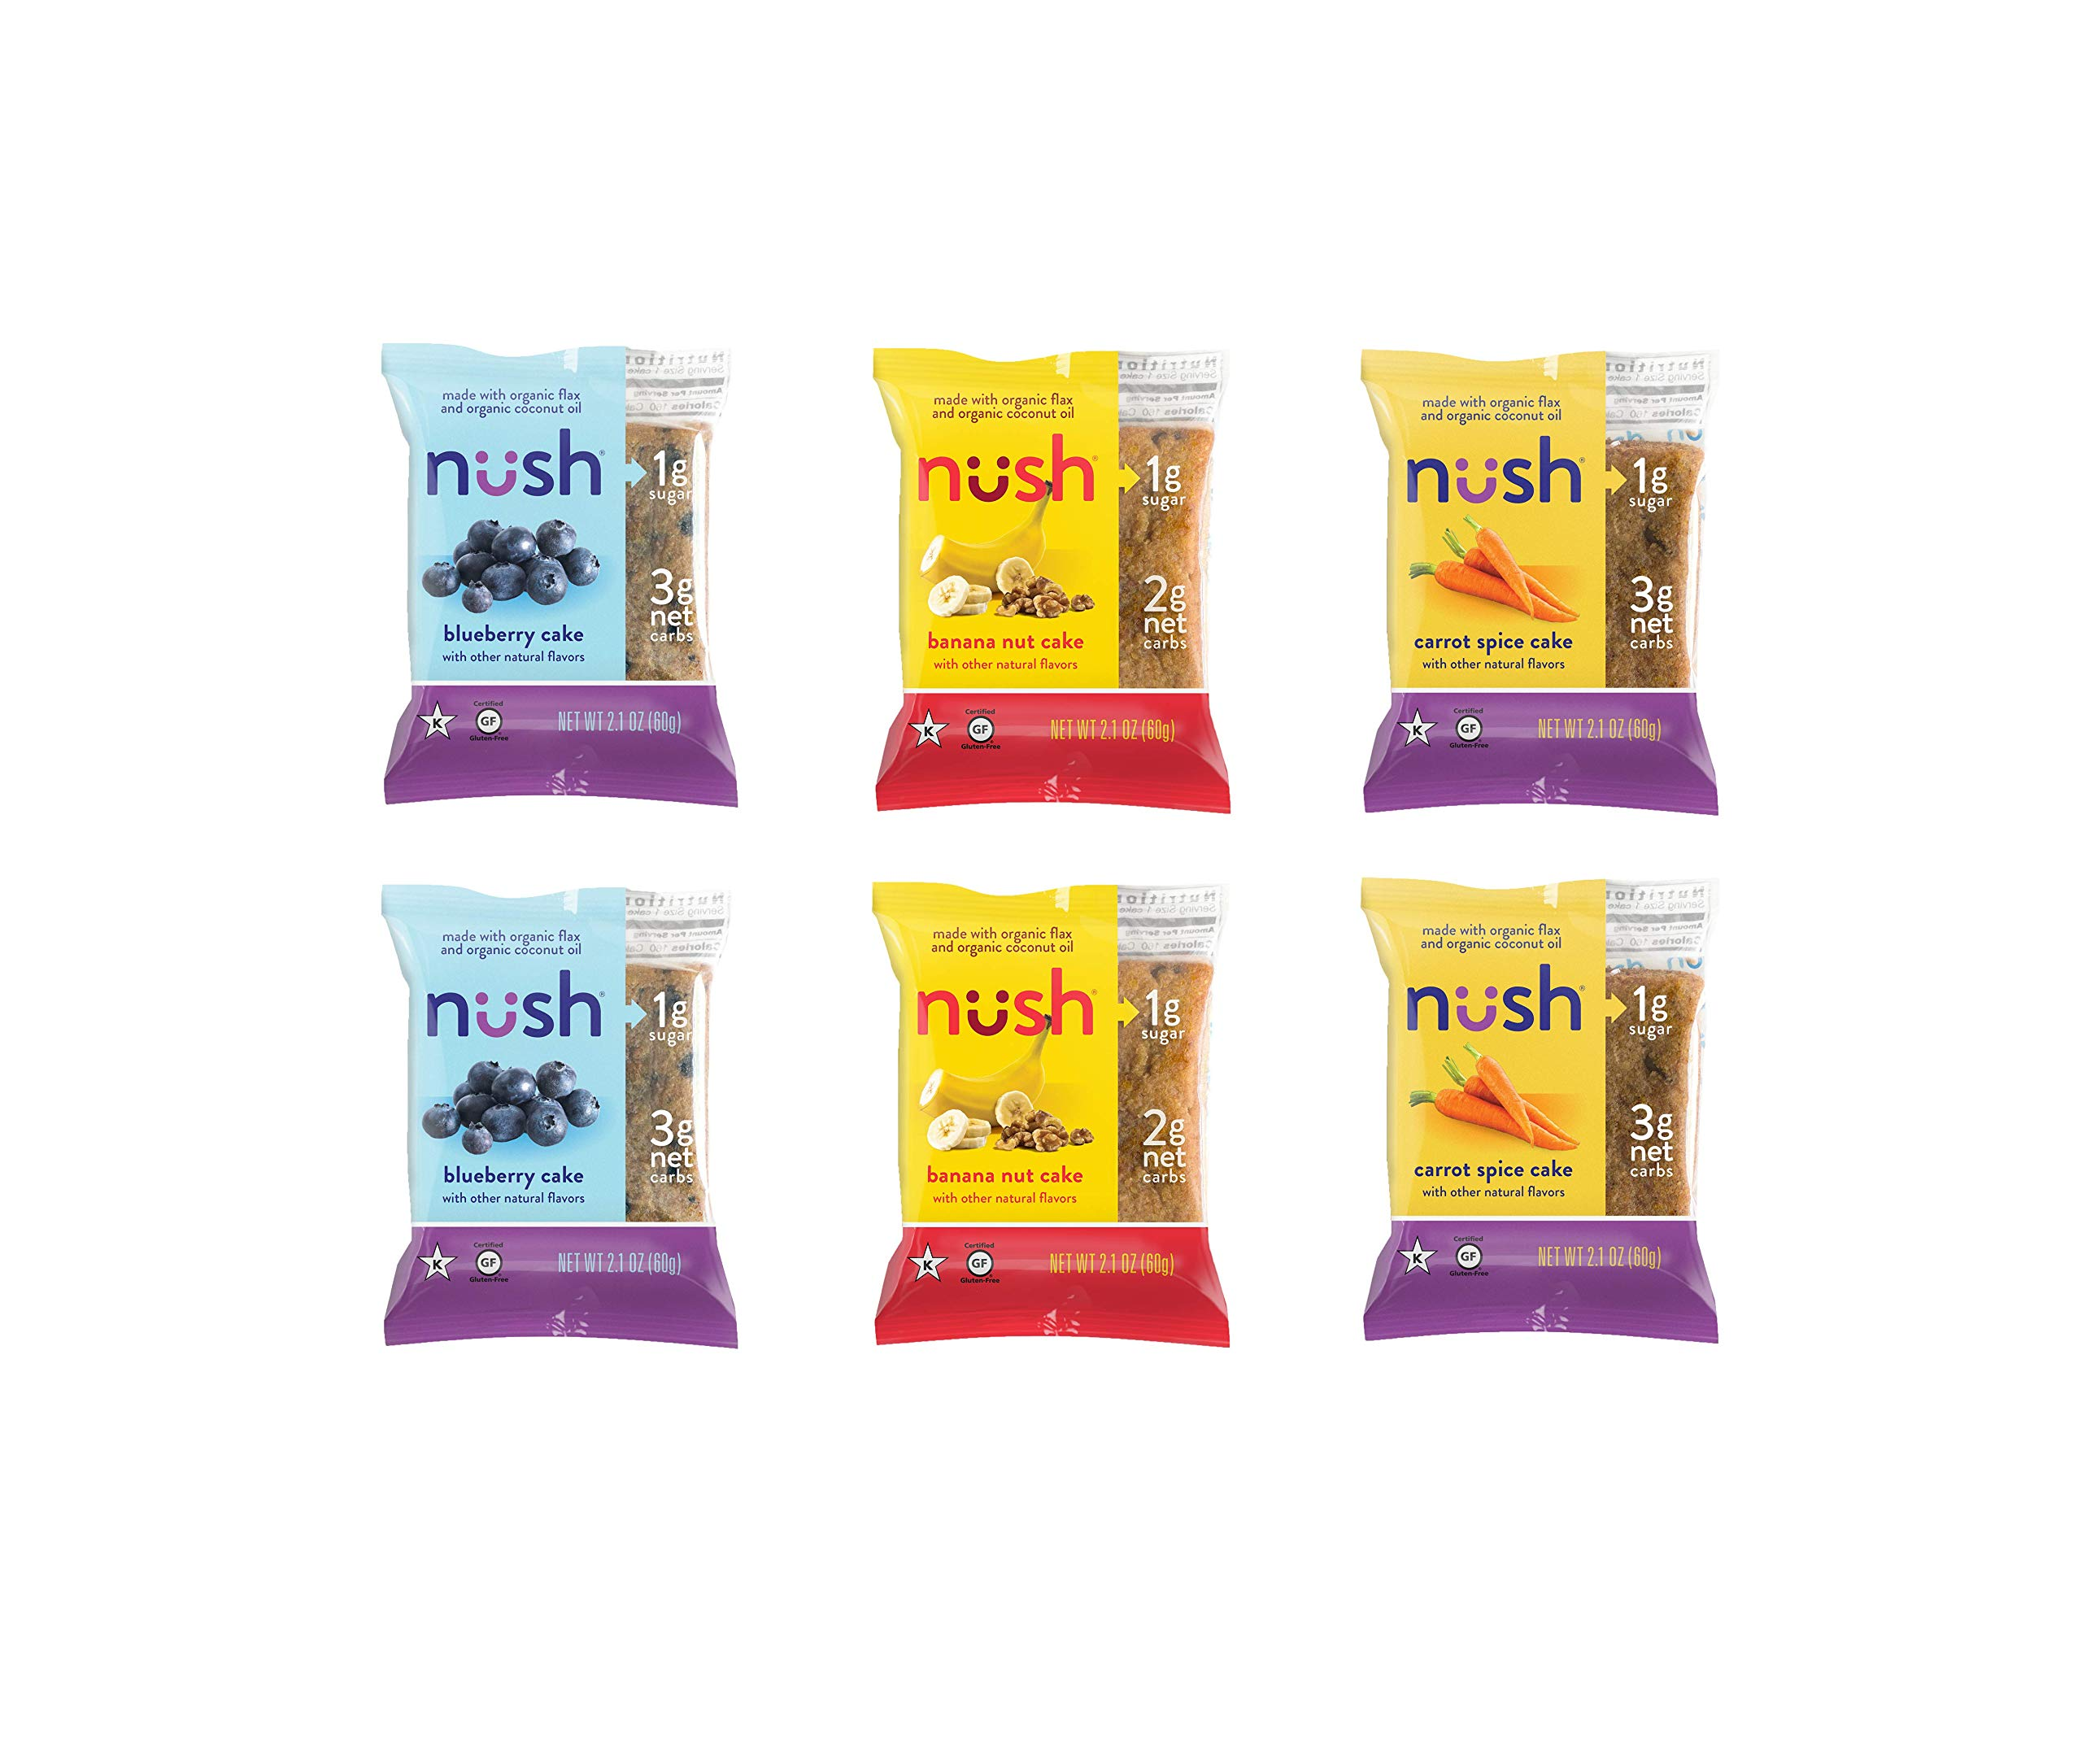 Low Carb Keto Snack Cakes (Flax-Based) Best-Sellers Variety Case - Blueberry, Carrot Spice and Banana Nut - Gluten Free, Soy Free, Organic, No Added Sugar - Great for Ketogenic Diet by Nush Foods